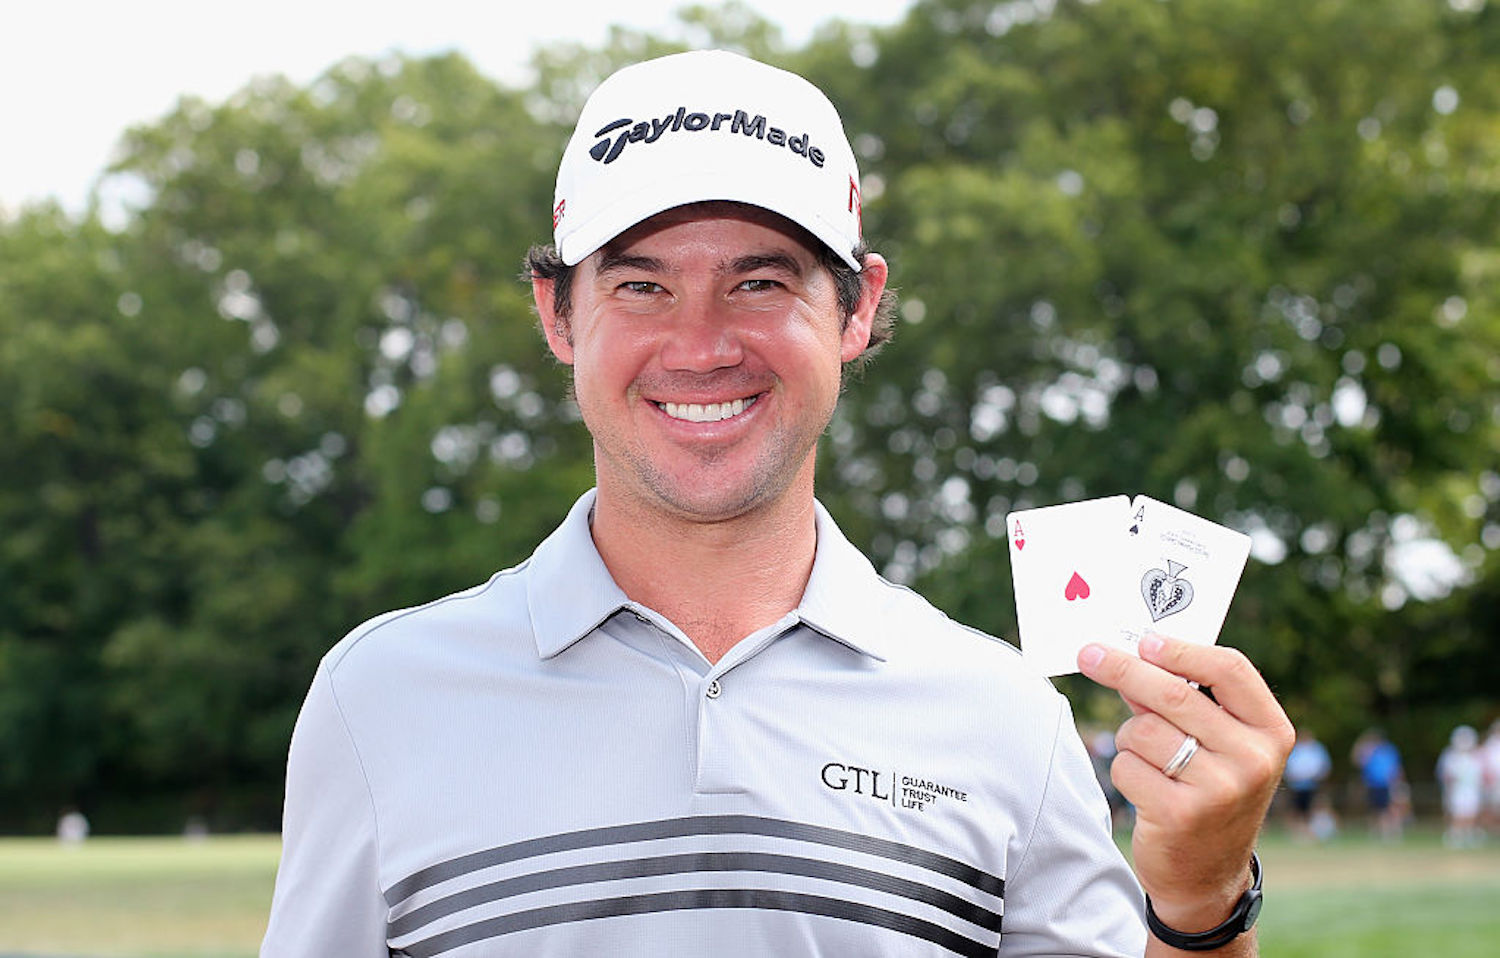 Making a hole-in-one on the PGA Tour is hard enough, but has anyone ever made two aces in the same round before?